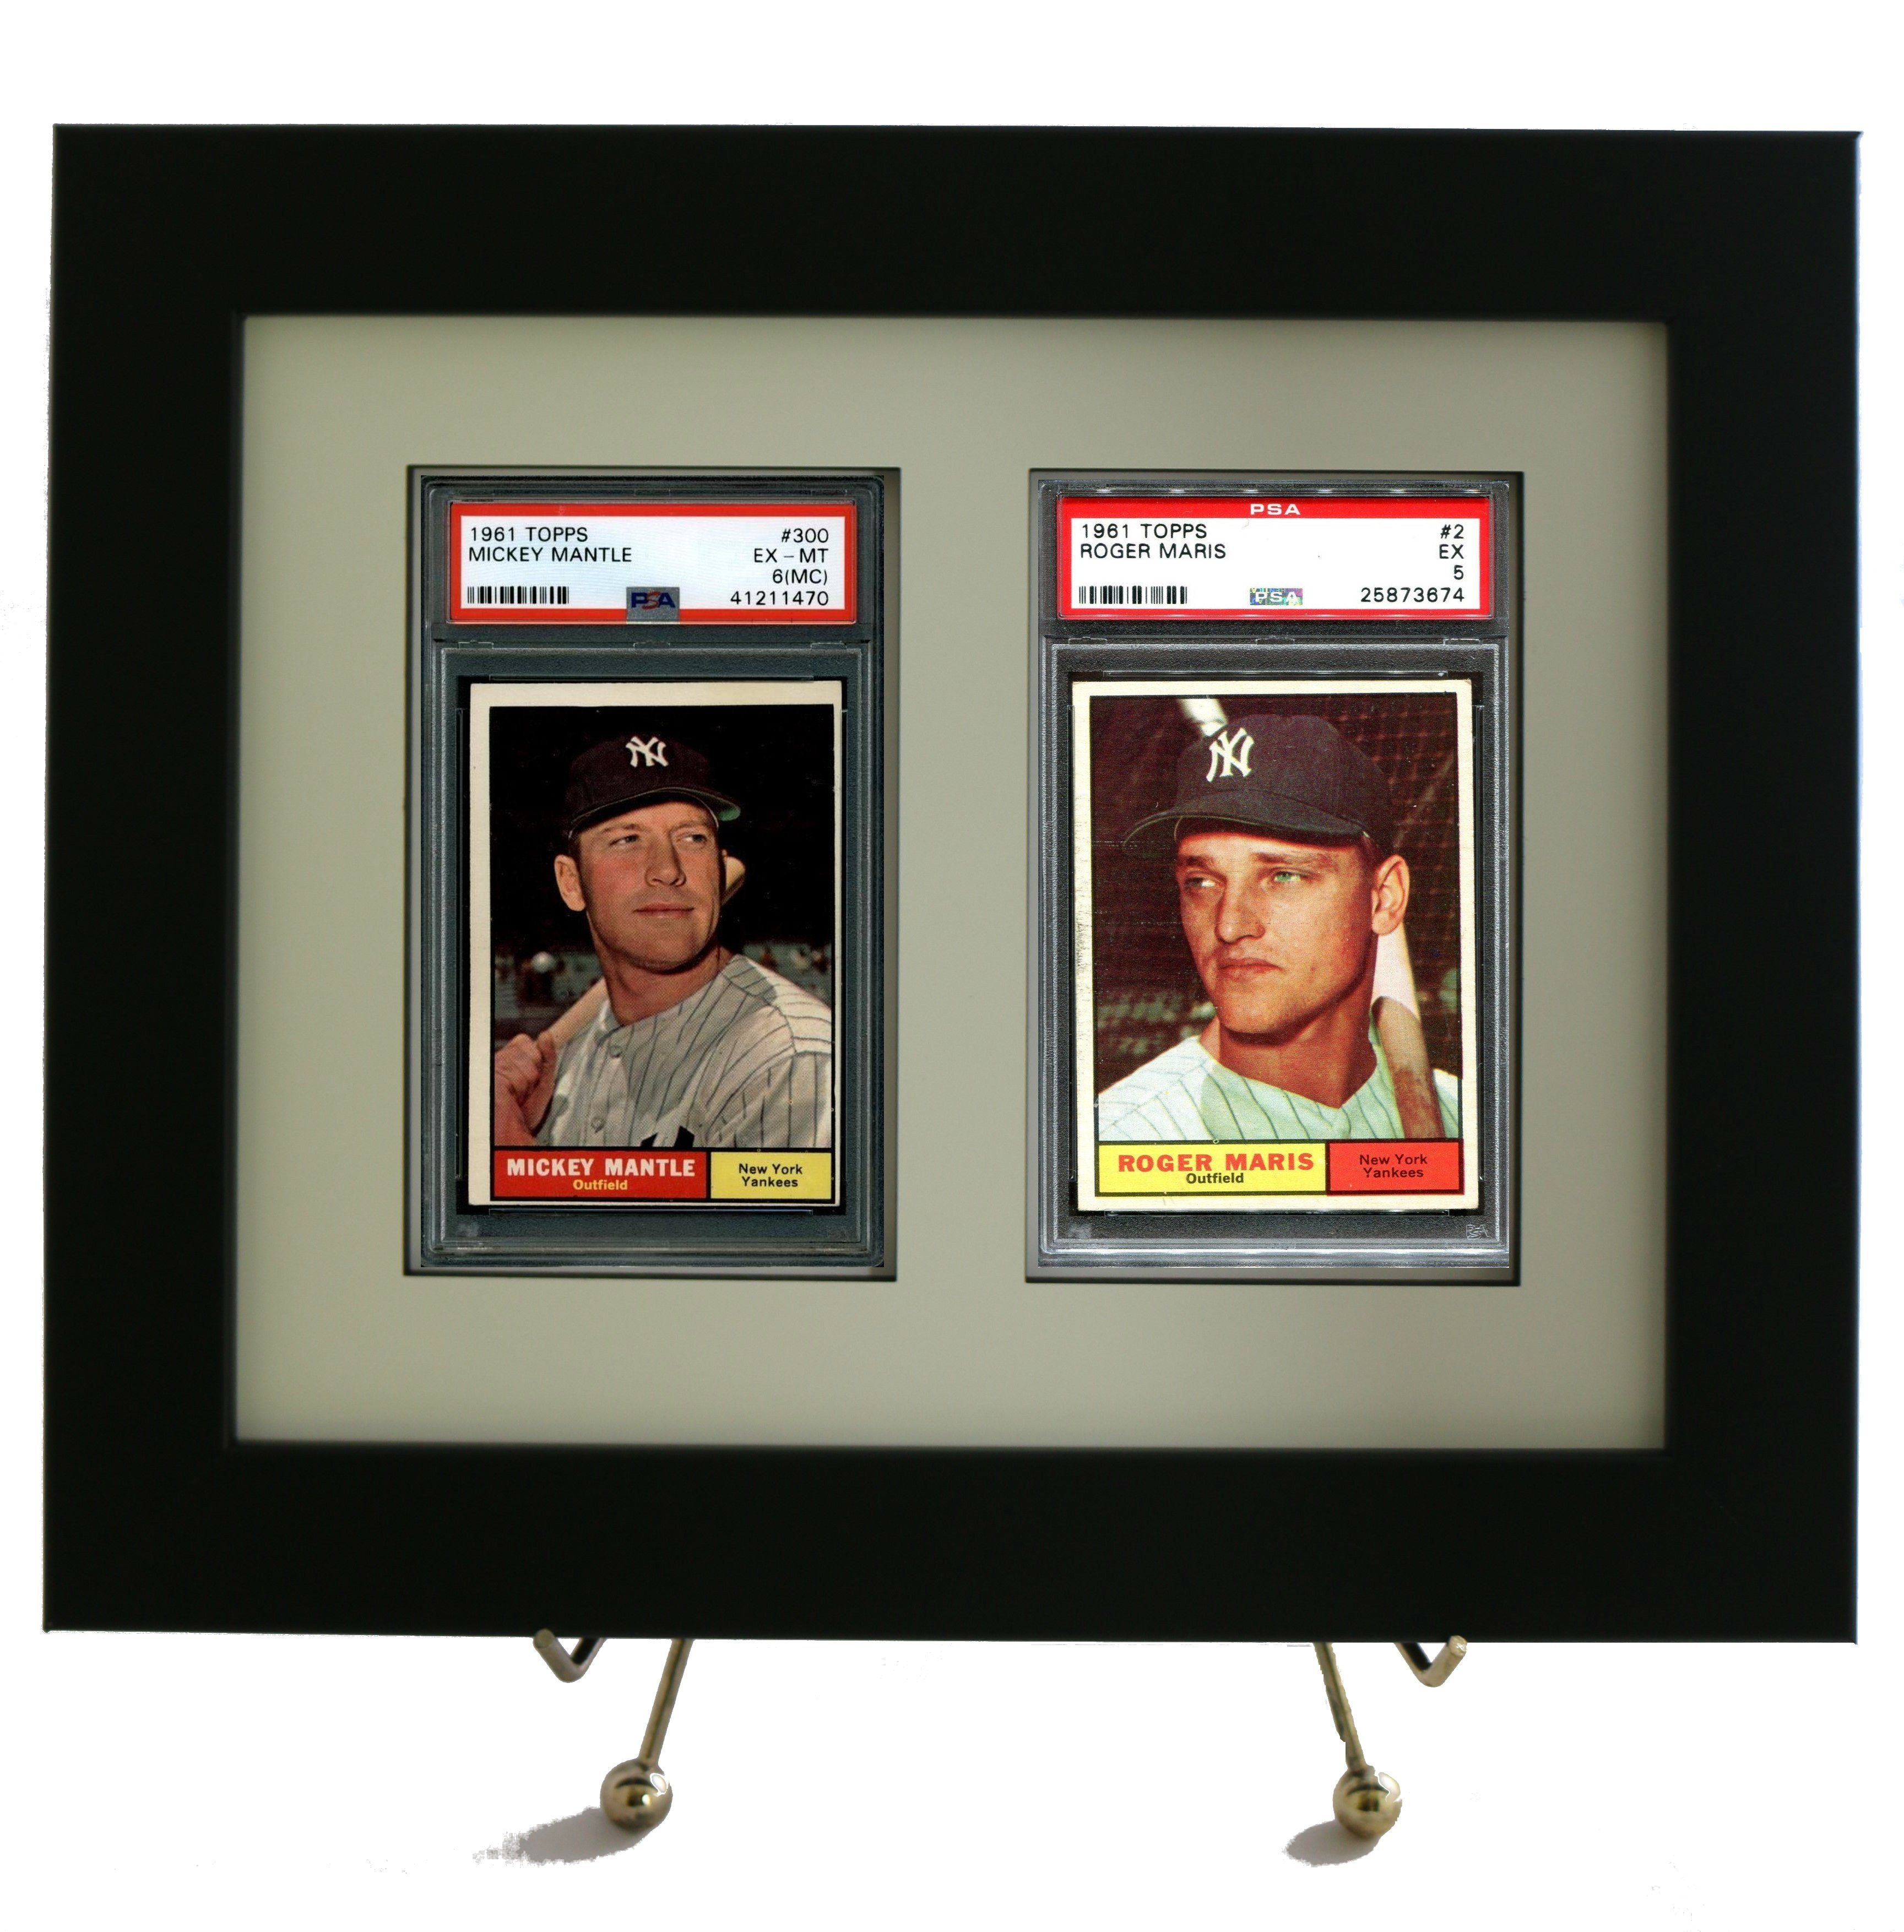 Framed Display For 2 Psa Graded Vertical Cards New 8x10 Size Baseball Card Displays Frame Display Sports Cards Display